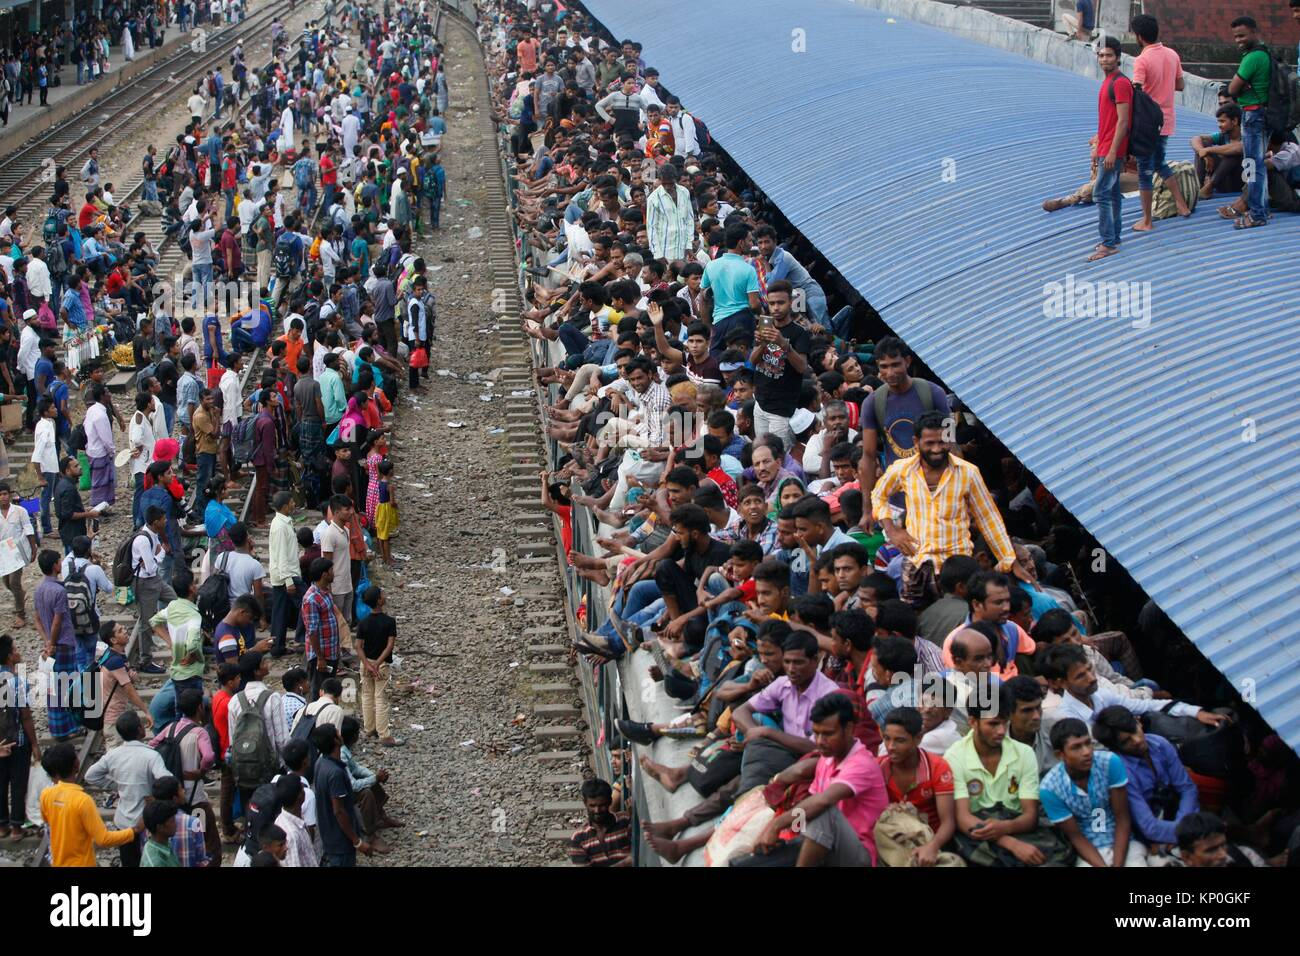 Bangladeshis cram onto a train as they travel home to be with their families ahead of the Muslim festival of Eid - Stock Image